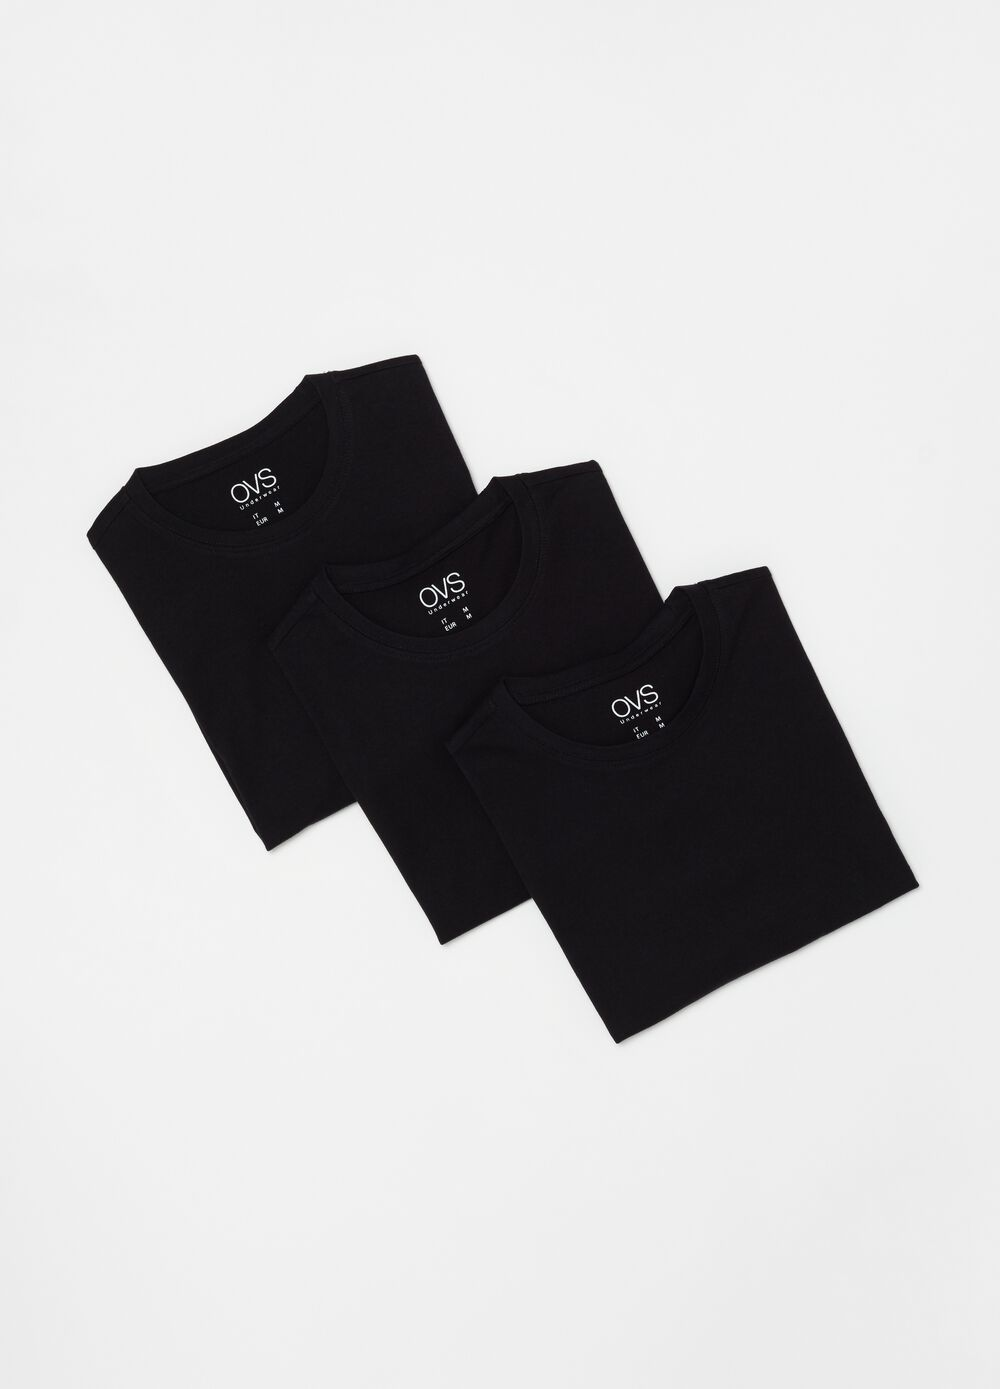 Three-pack undershirts with round neck